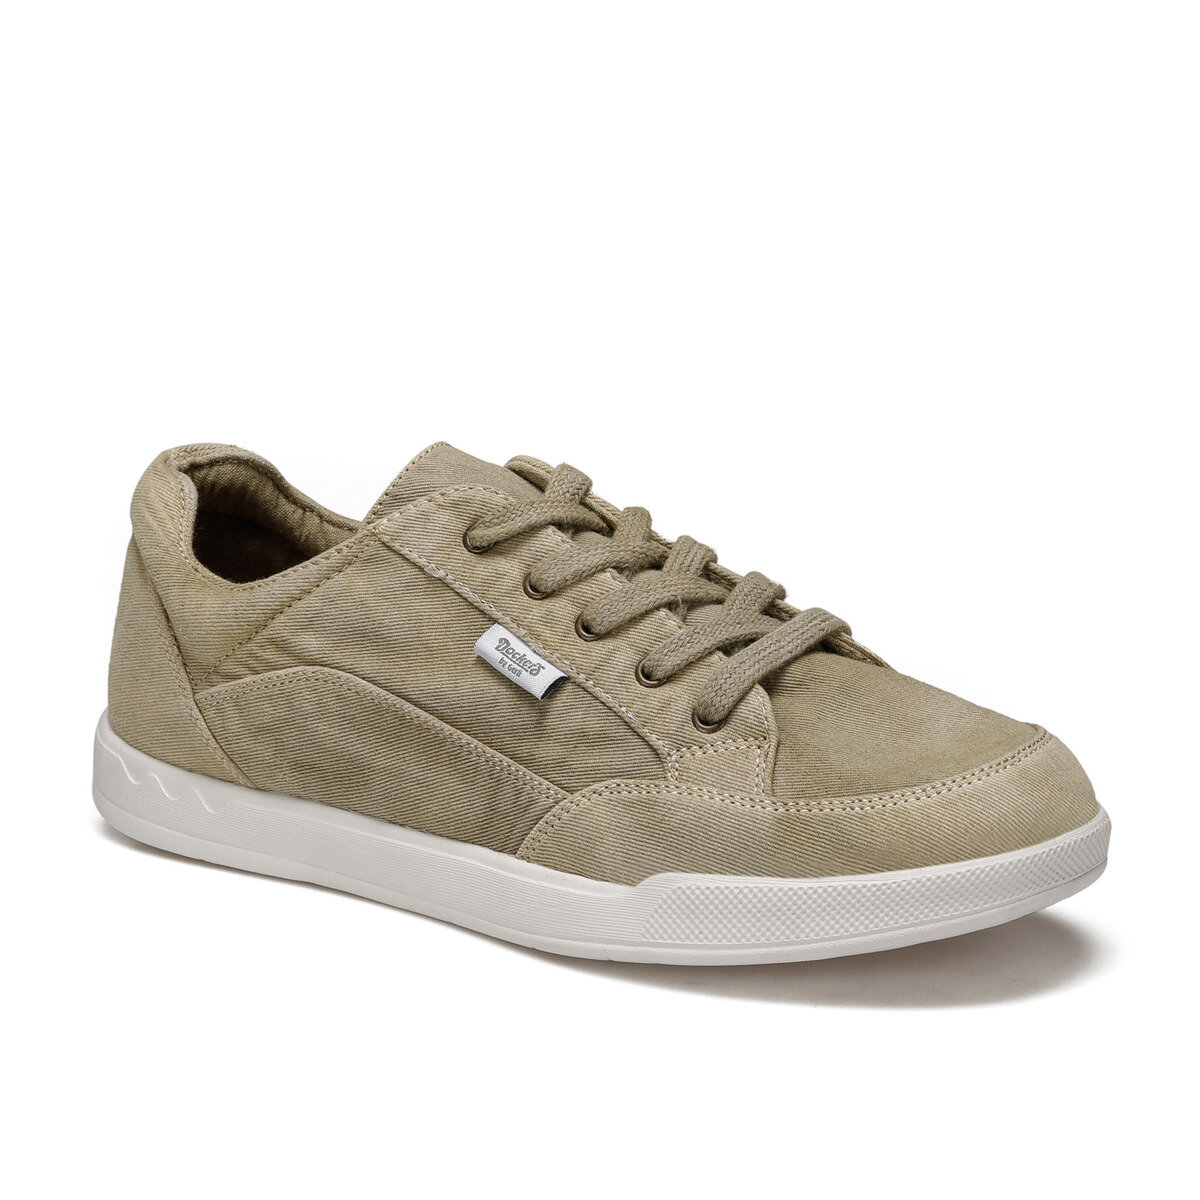 FLO 226370 Sand Color Male Sneaker Shoes By Dockers The Gerle